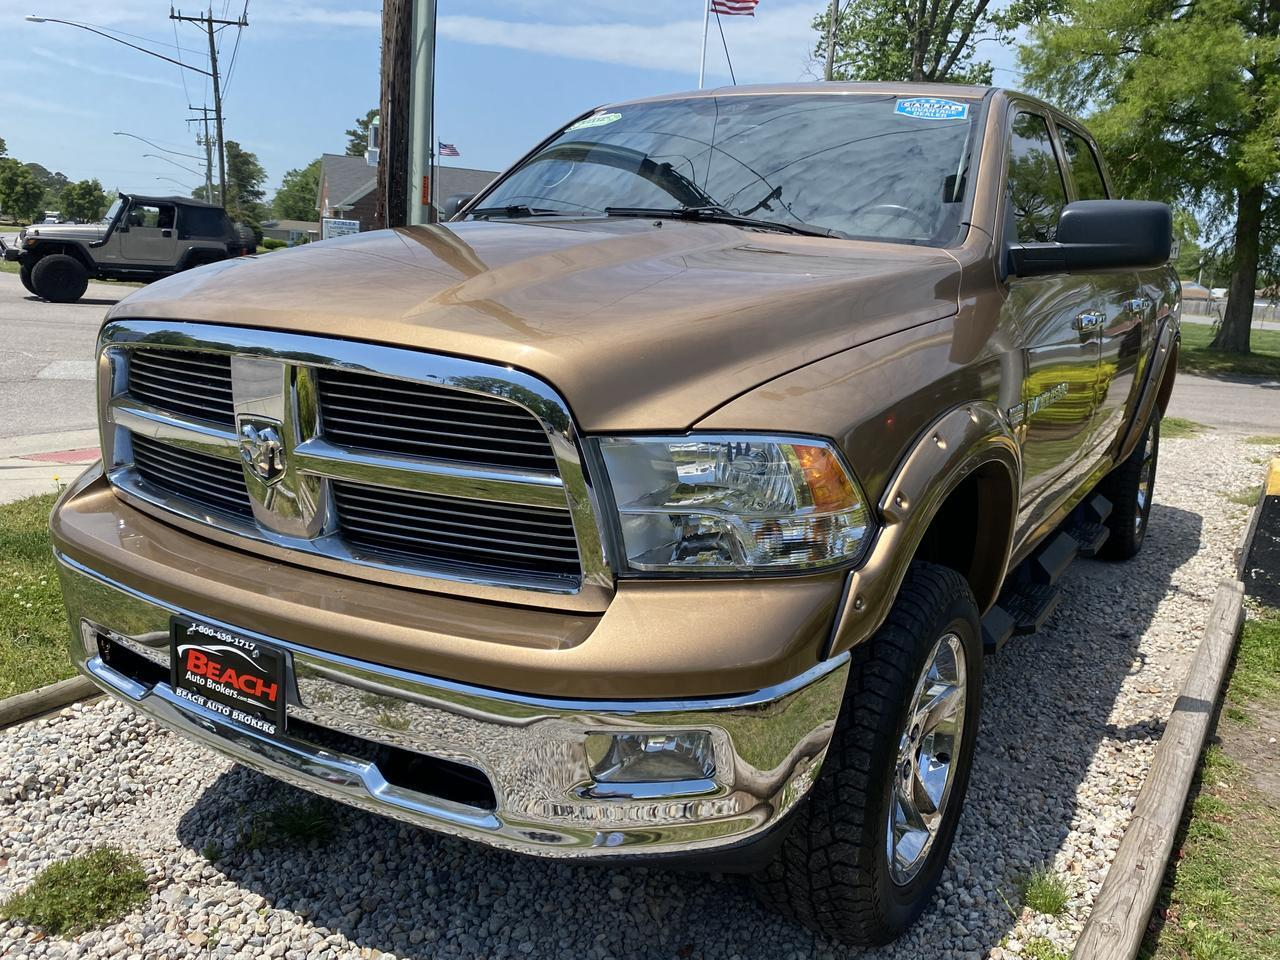 2012 DODGE RAM 1500 BIG HORN CREW CAB 4X4, WARRANTY, LEATHER, KEYLESS START, AUX PORT, RARE COLOR,CLEAN CARFAX! Norfolk VA